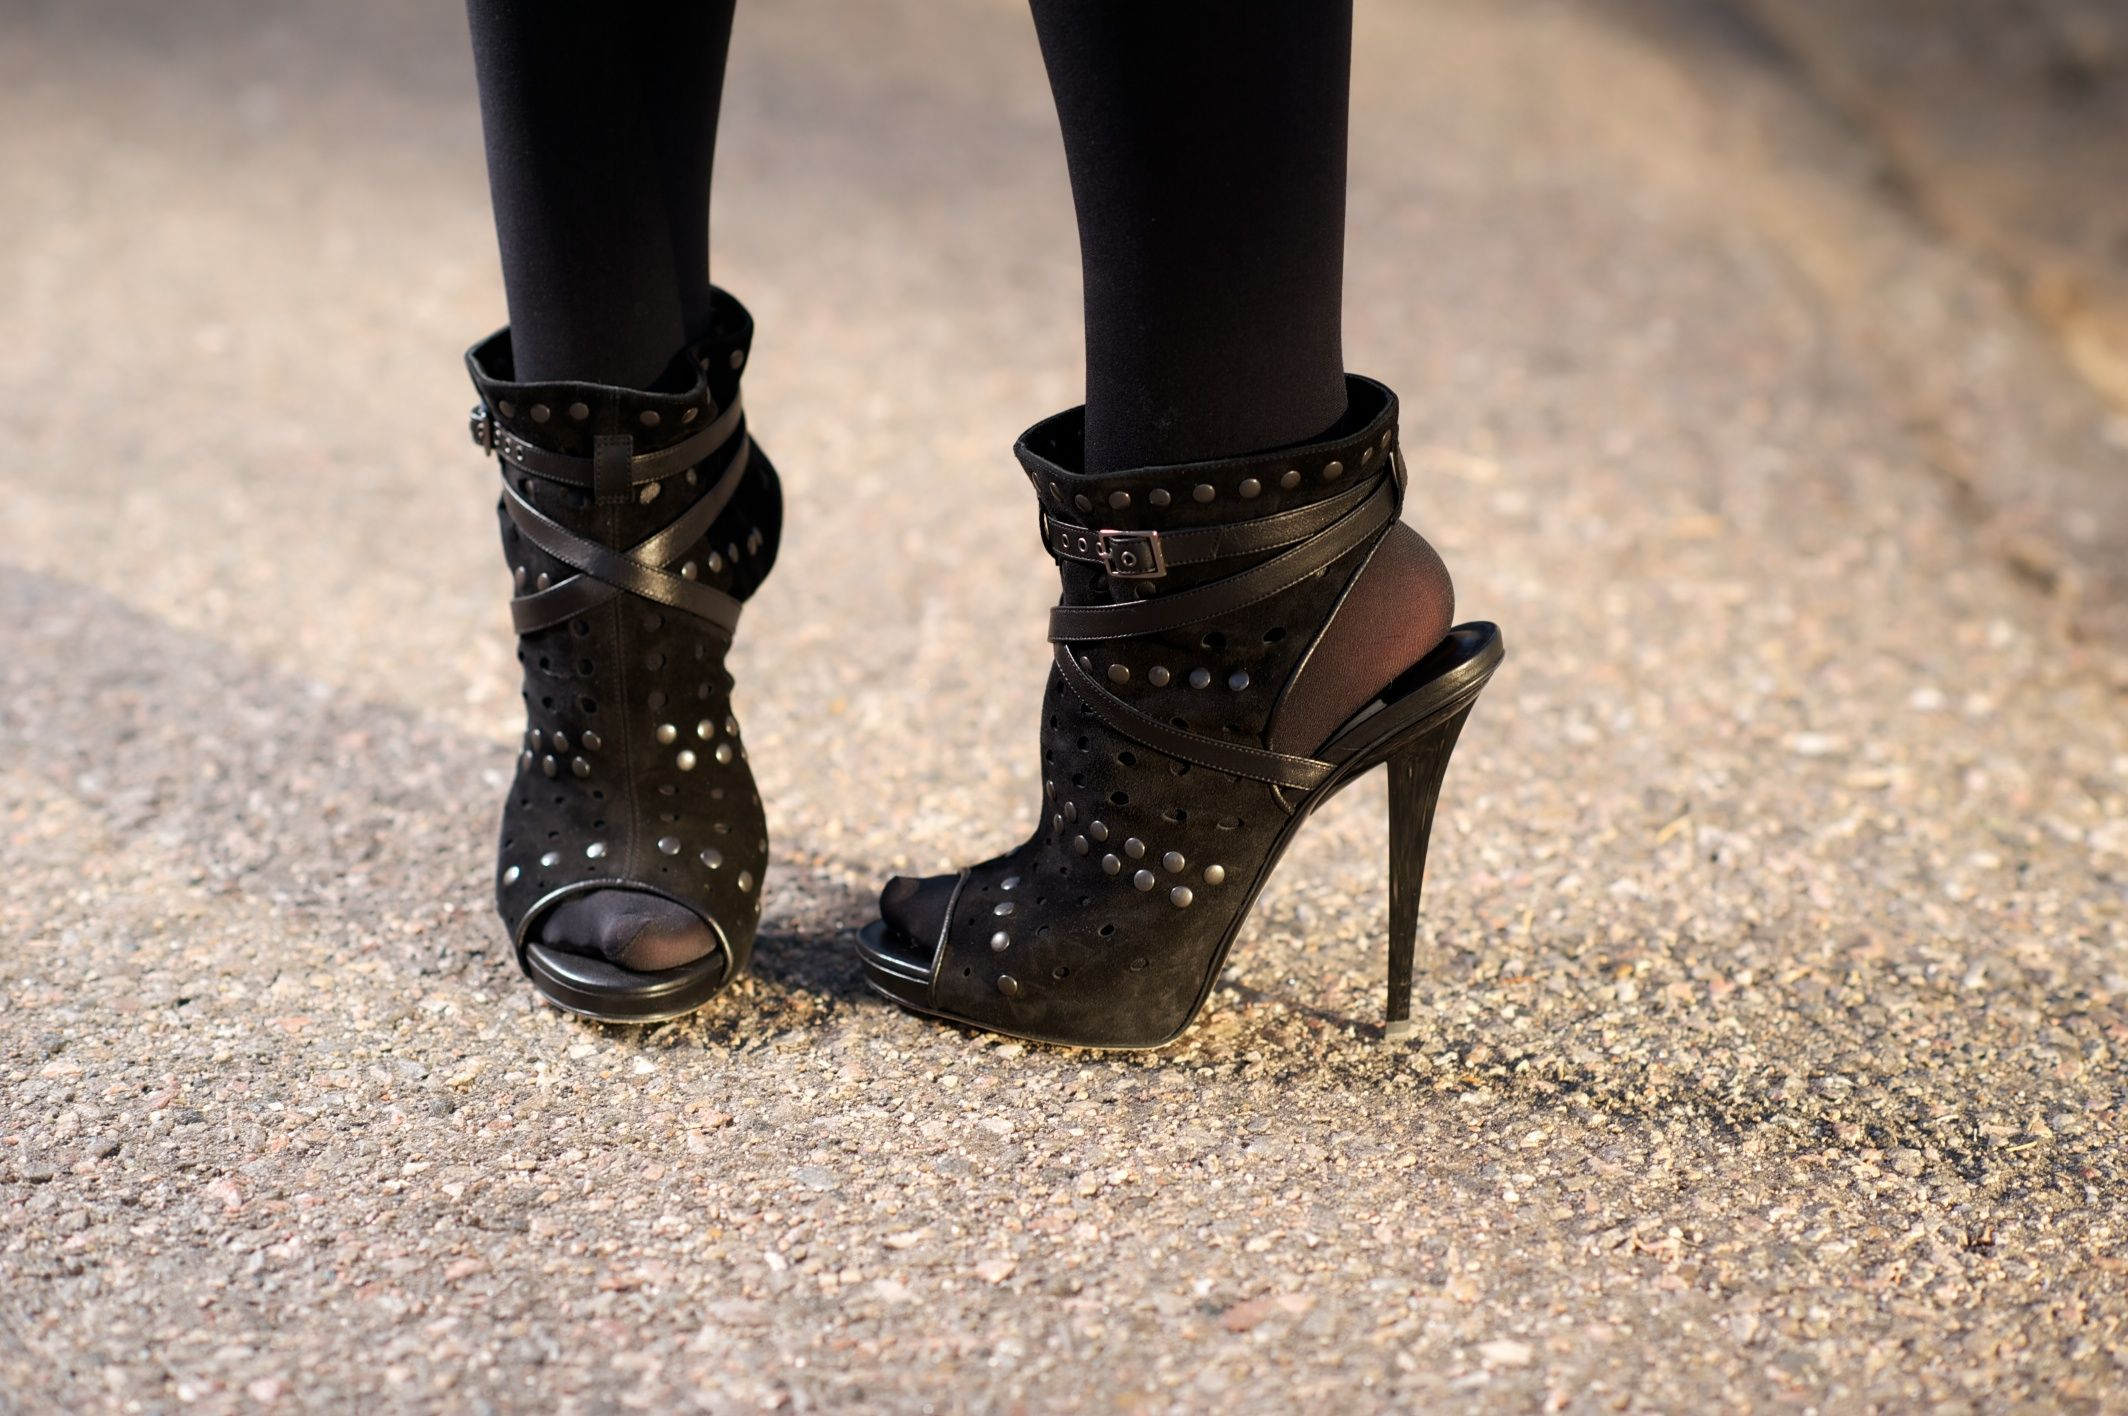 'jedd' Studded Sandals On Ofjacqueline Rose Jimmy The Choo Feet wNnv8m0